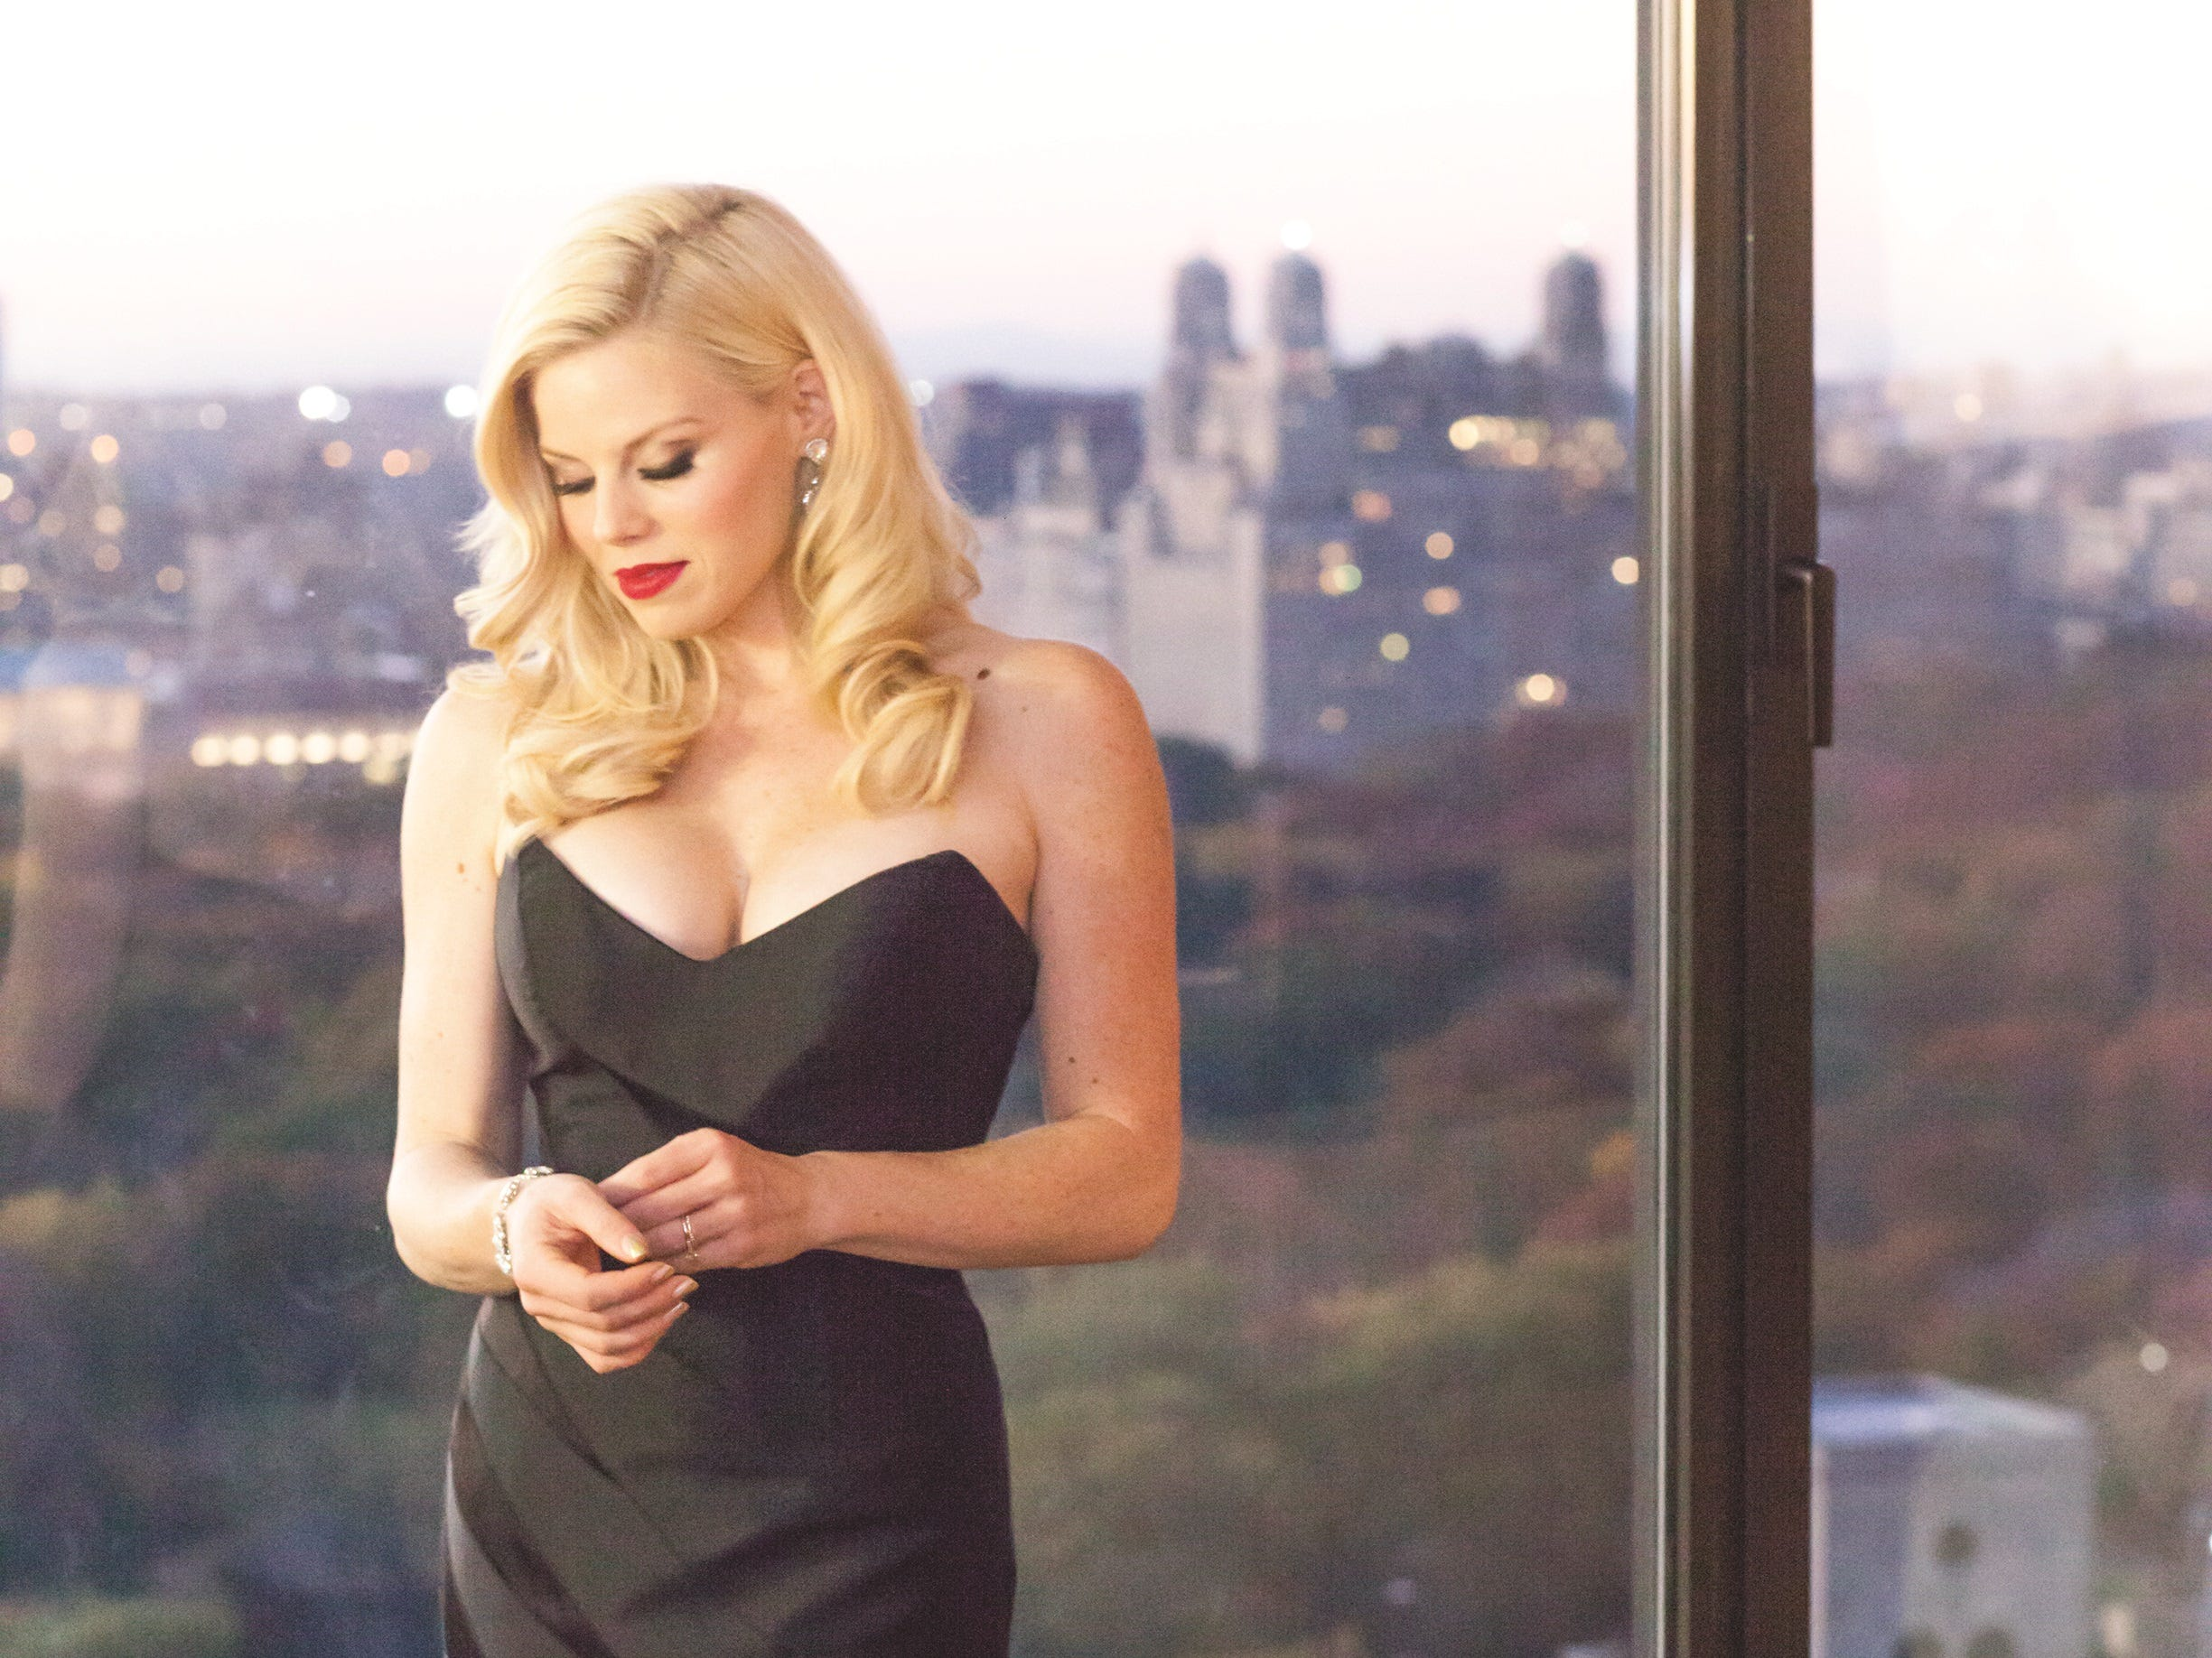 Megan Hilty will perform April 11 at the Annenberg Theater